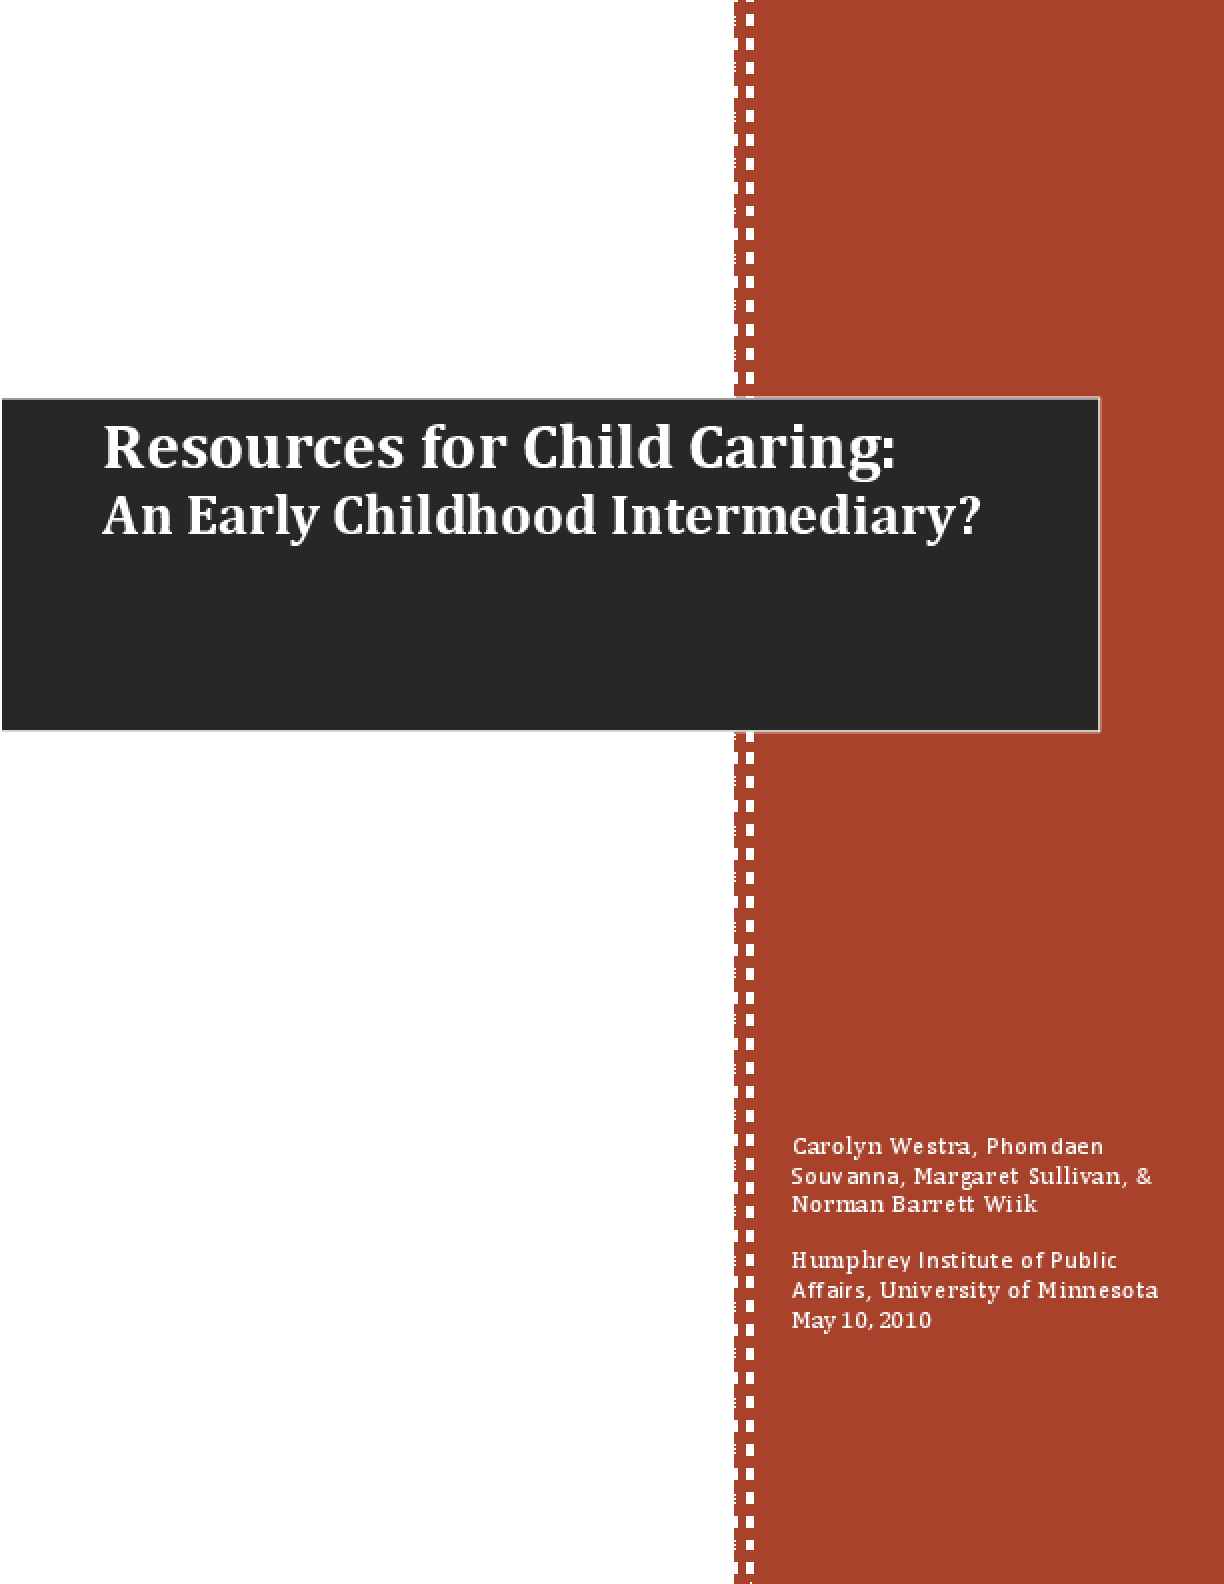 Resources for Child Caring: An Early Childhood Intermediary?